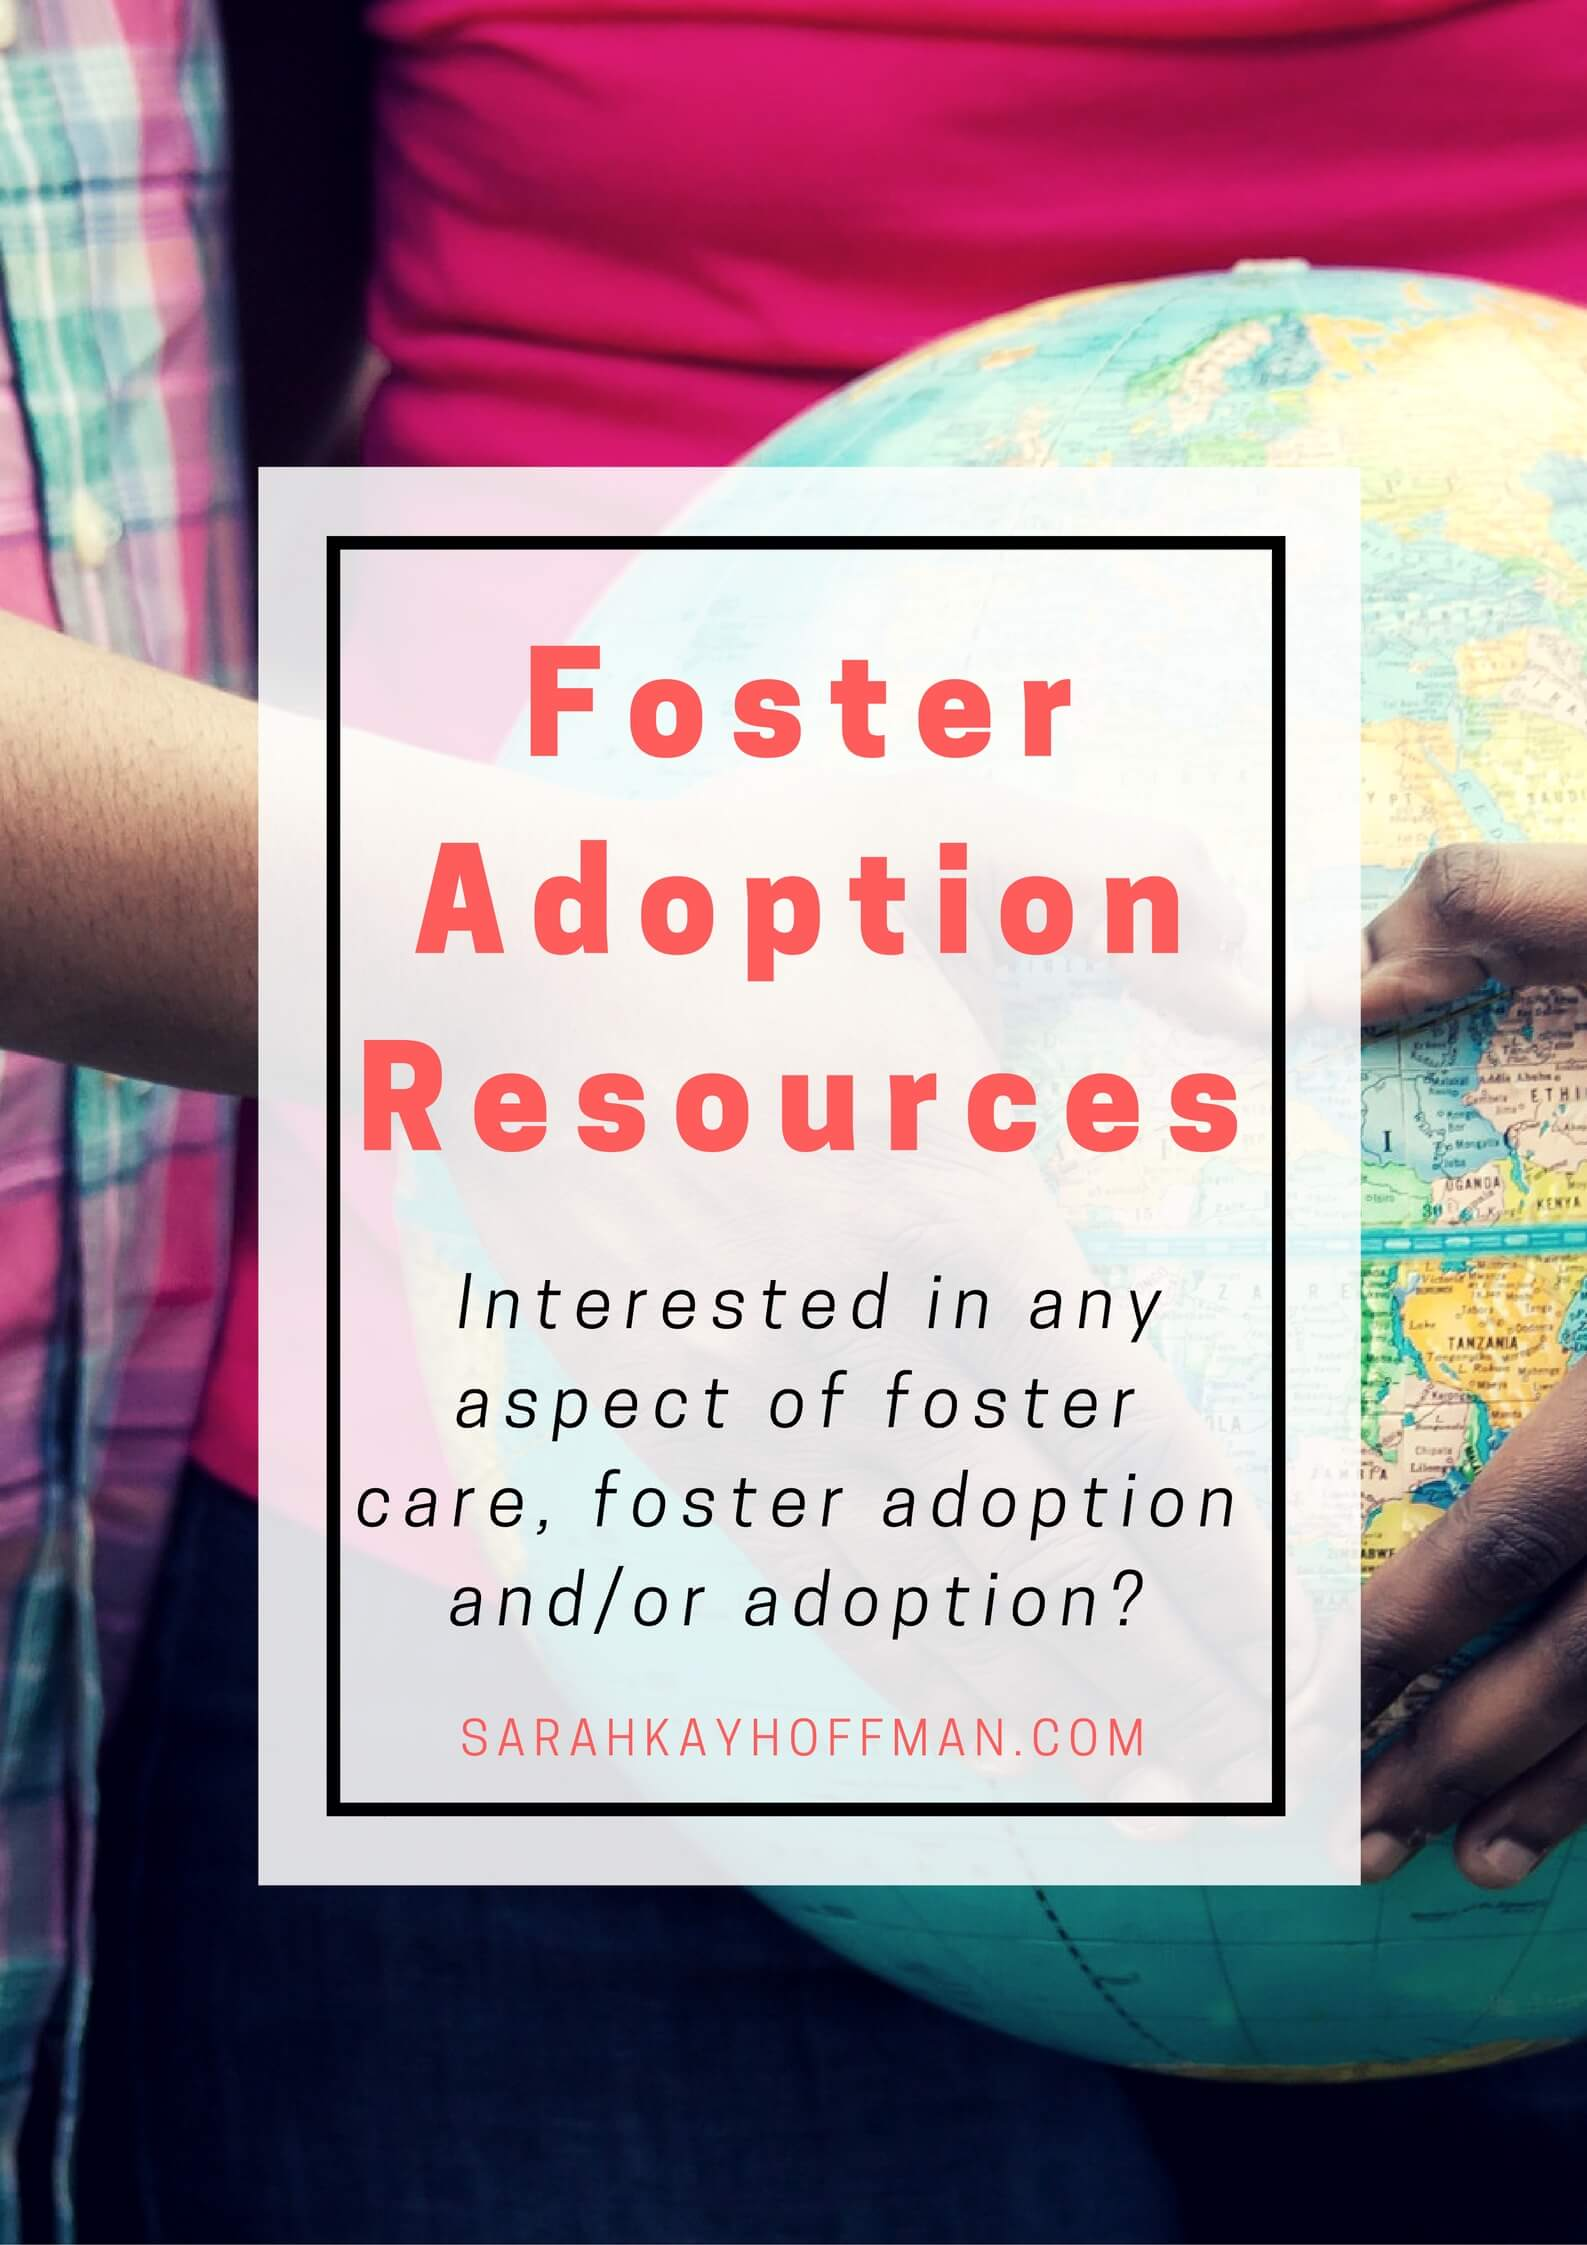 Foster Adoption Resources via sarahkayhoffman.com